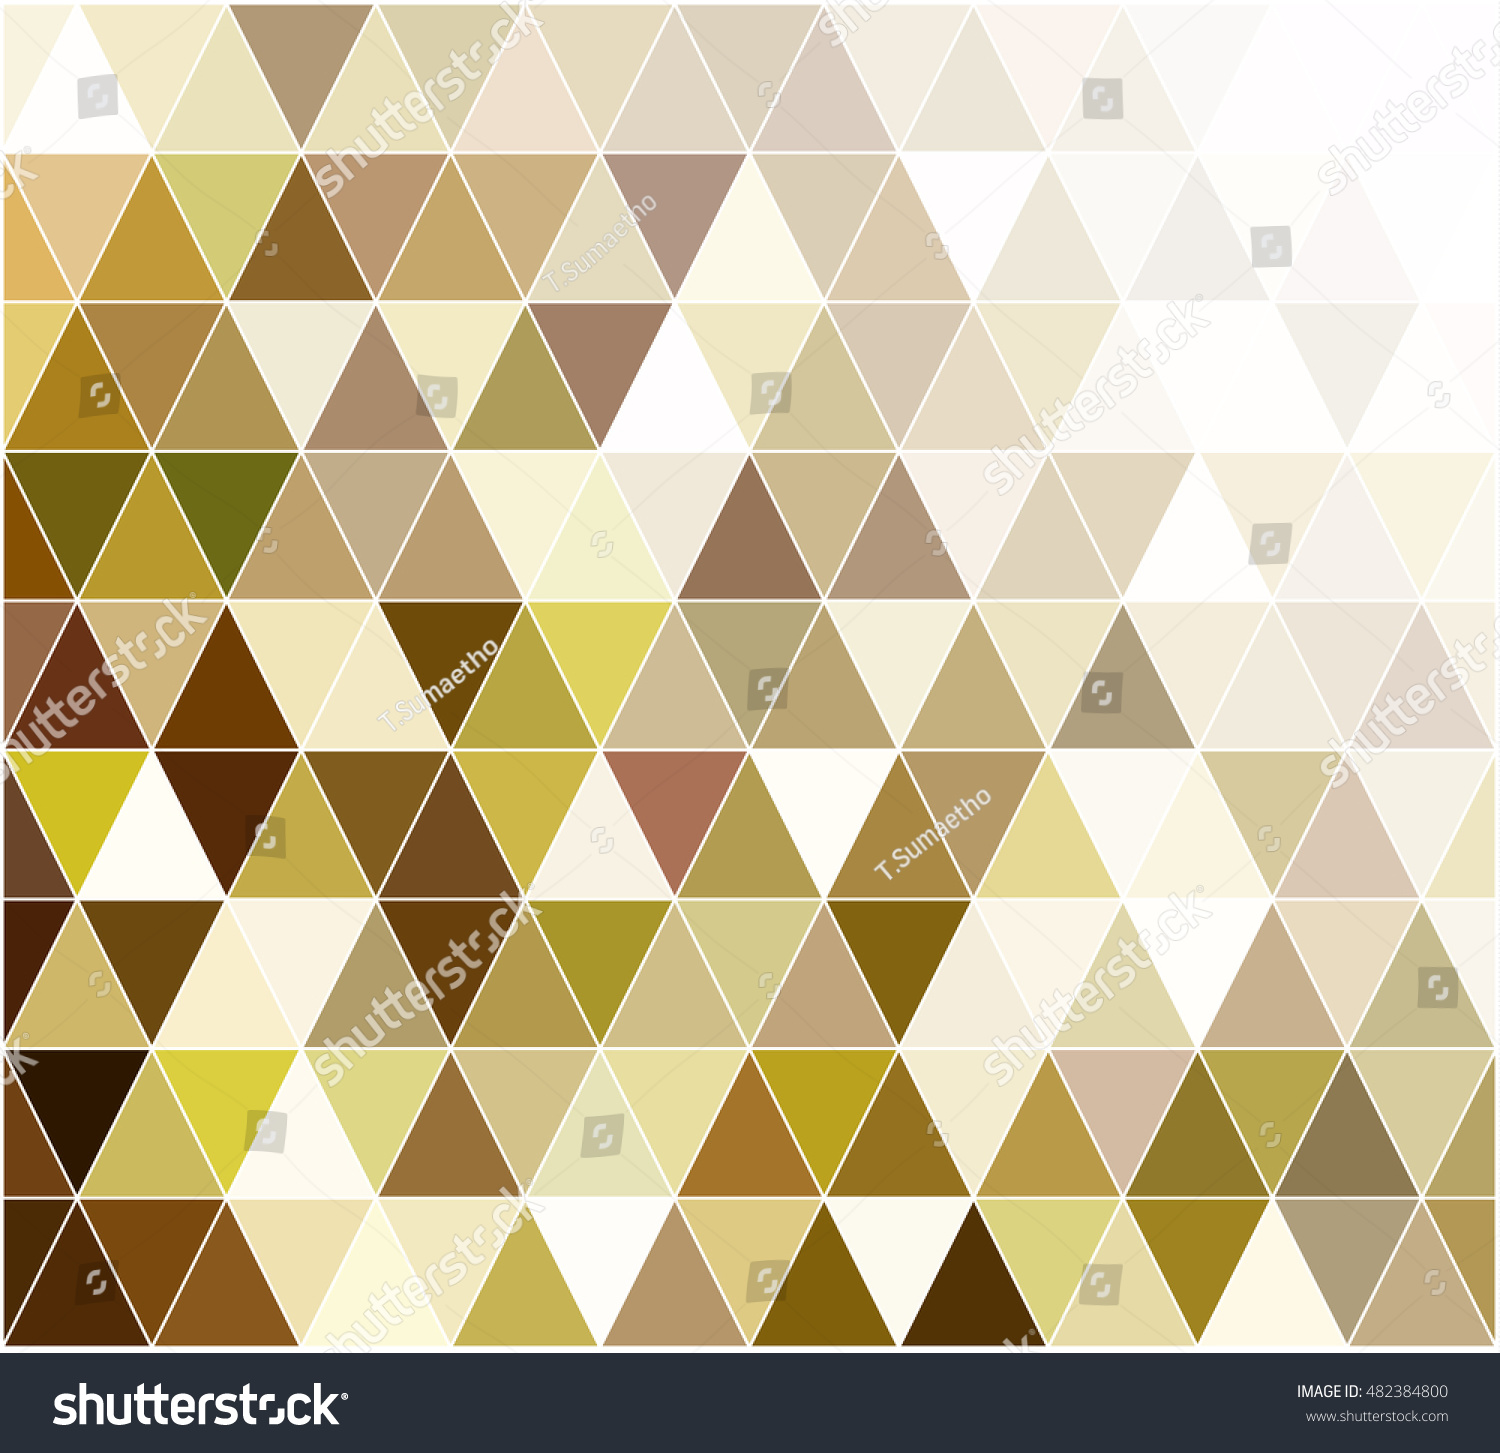 Yellow grid mosaic background creative design stock vector for Designs for mosaics templates